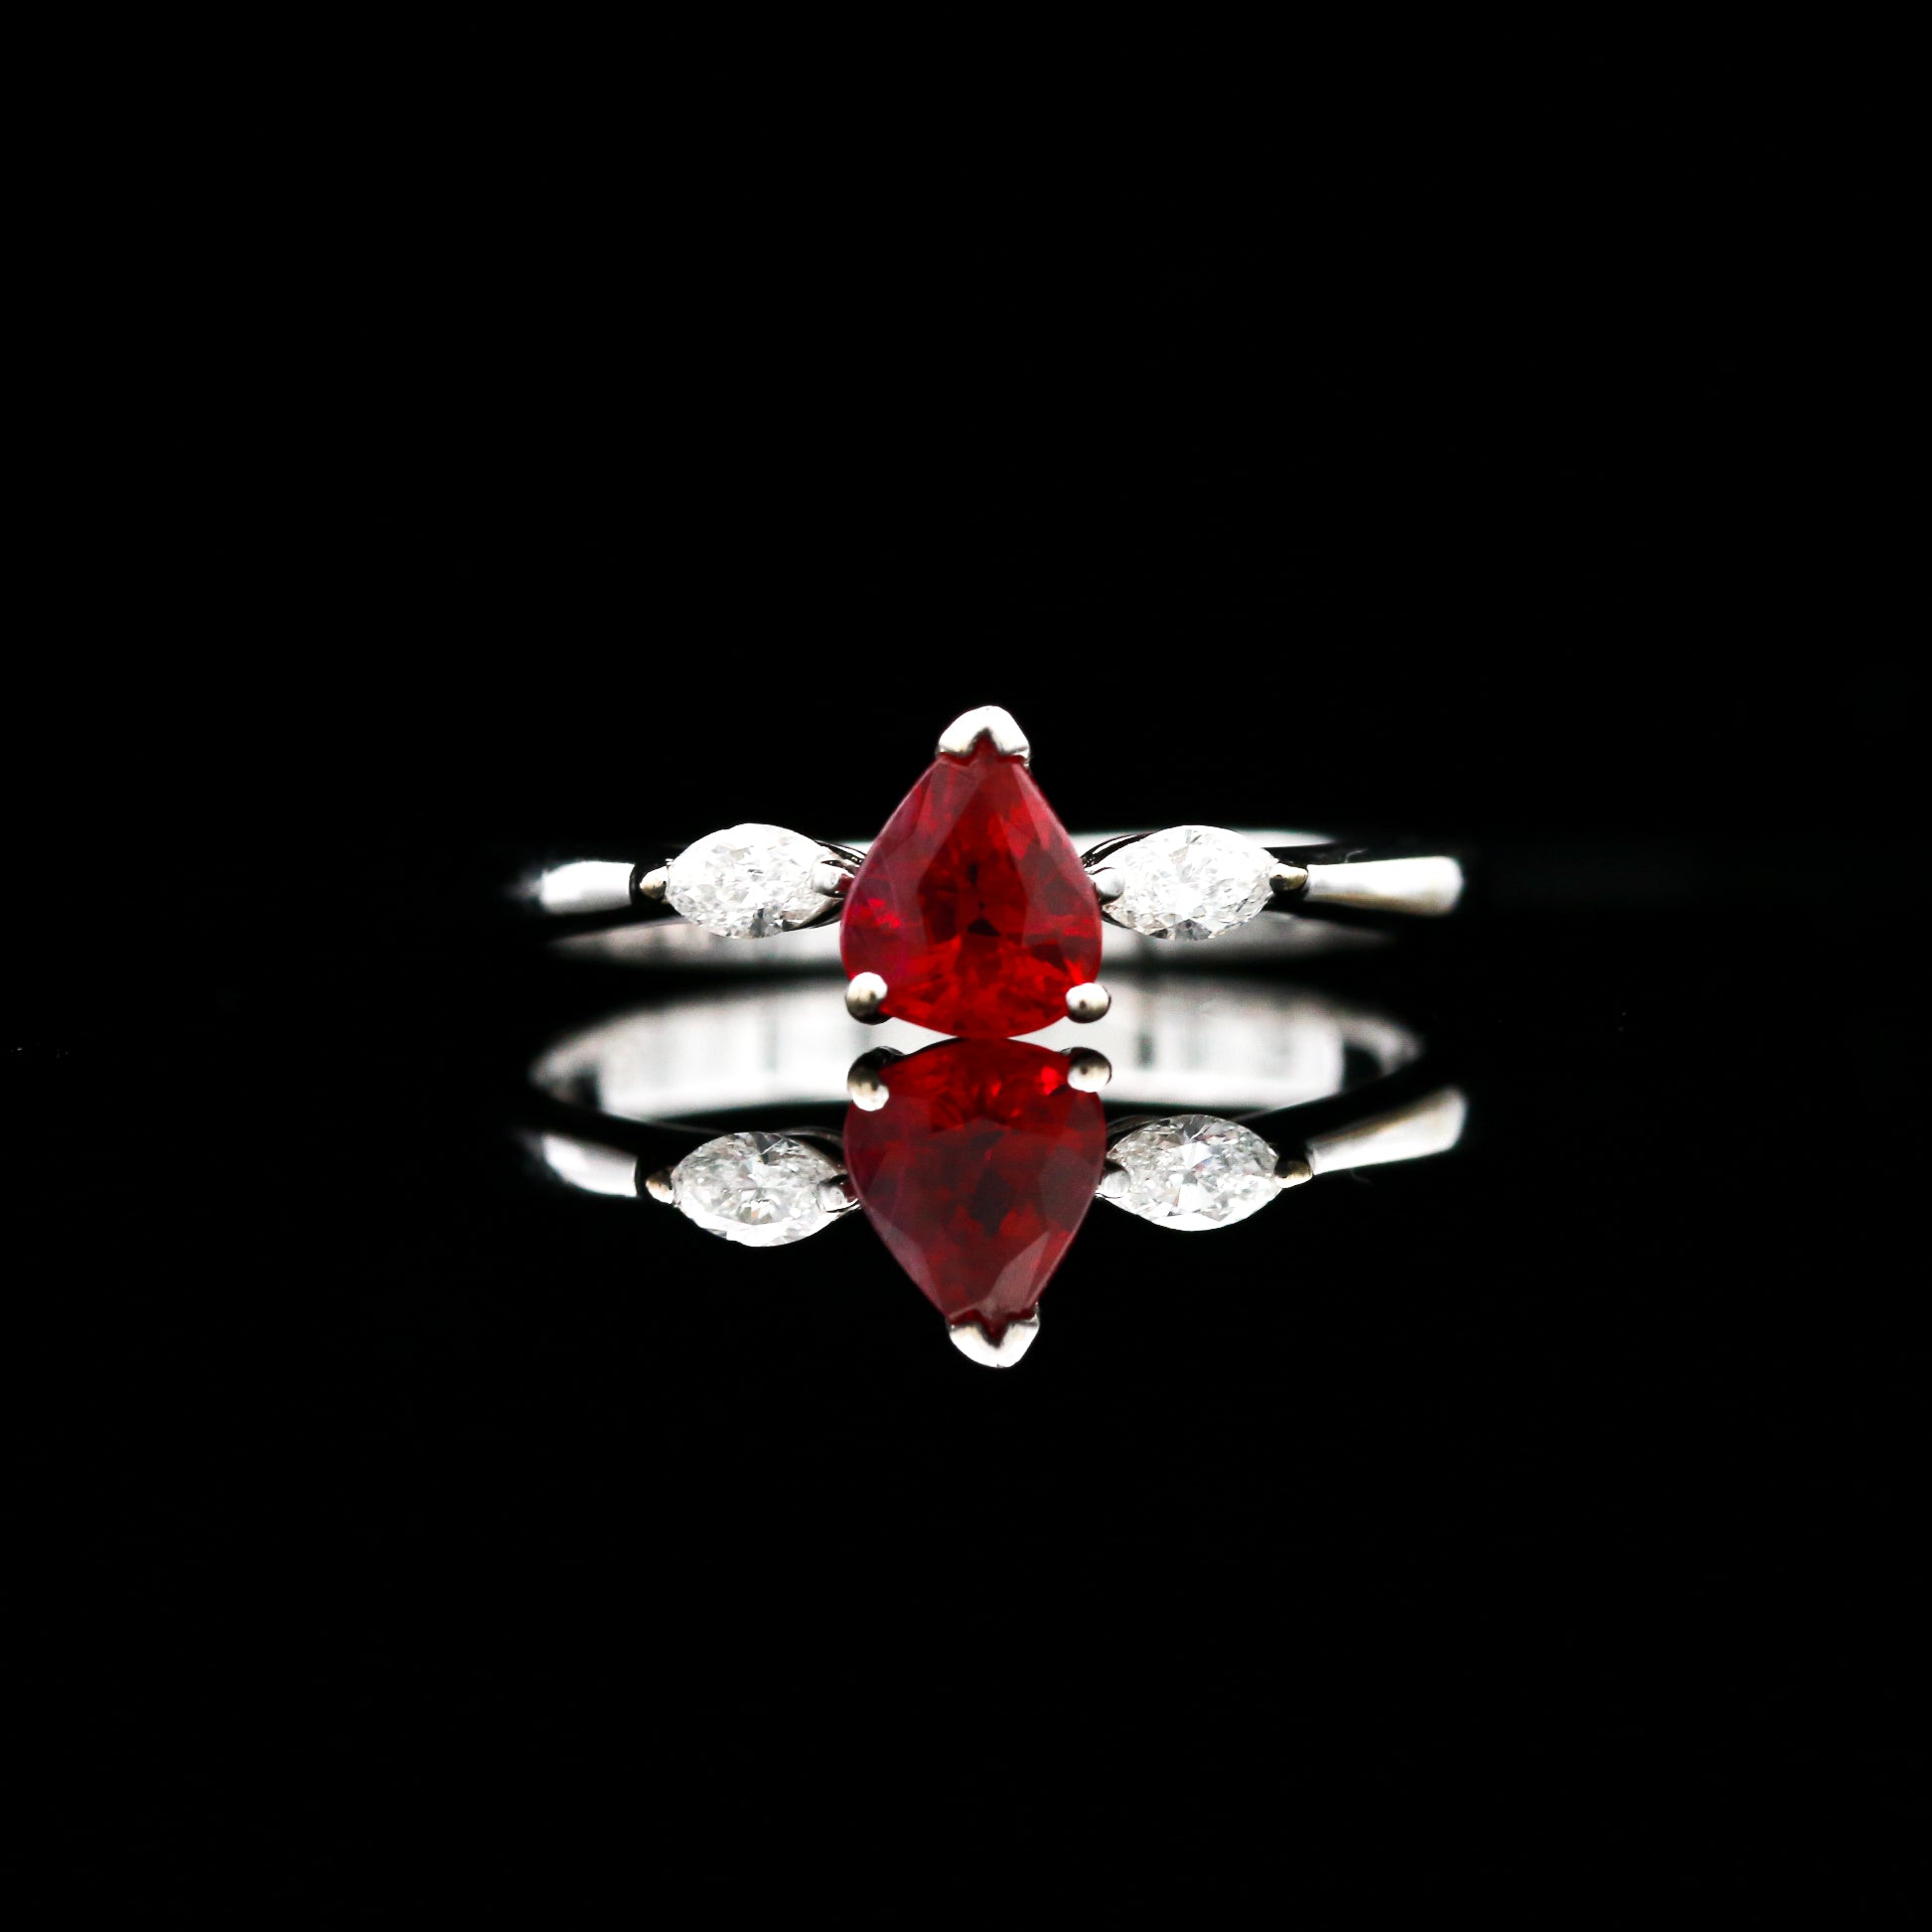 Pear Shaped Ruby & Marquise Diamonds in White Gold Ring - Sindur Style